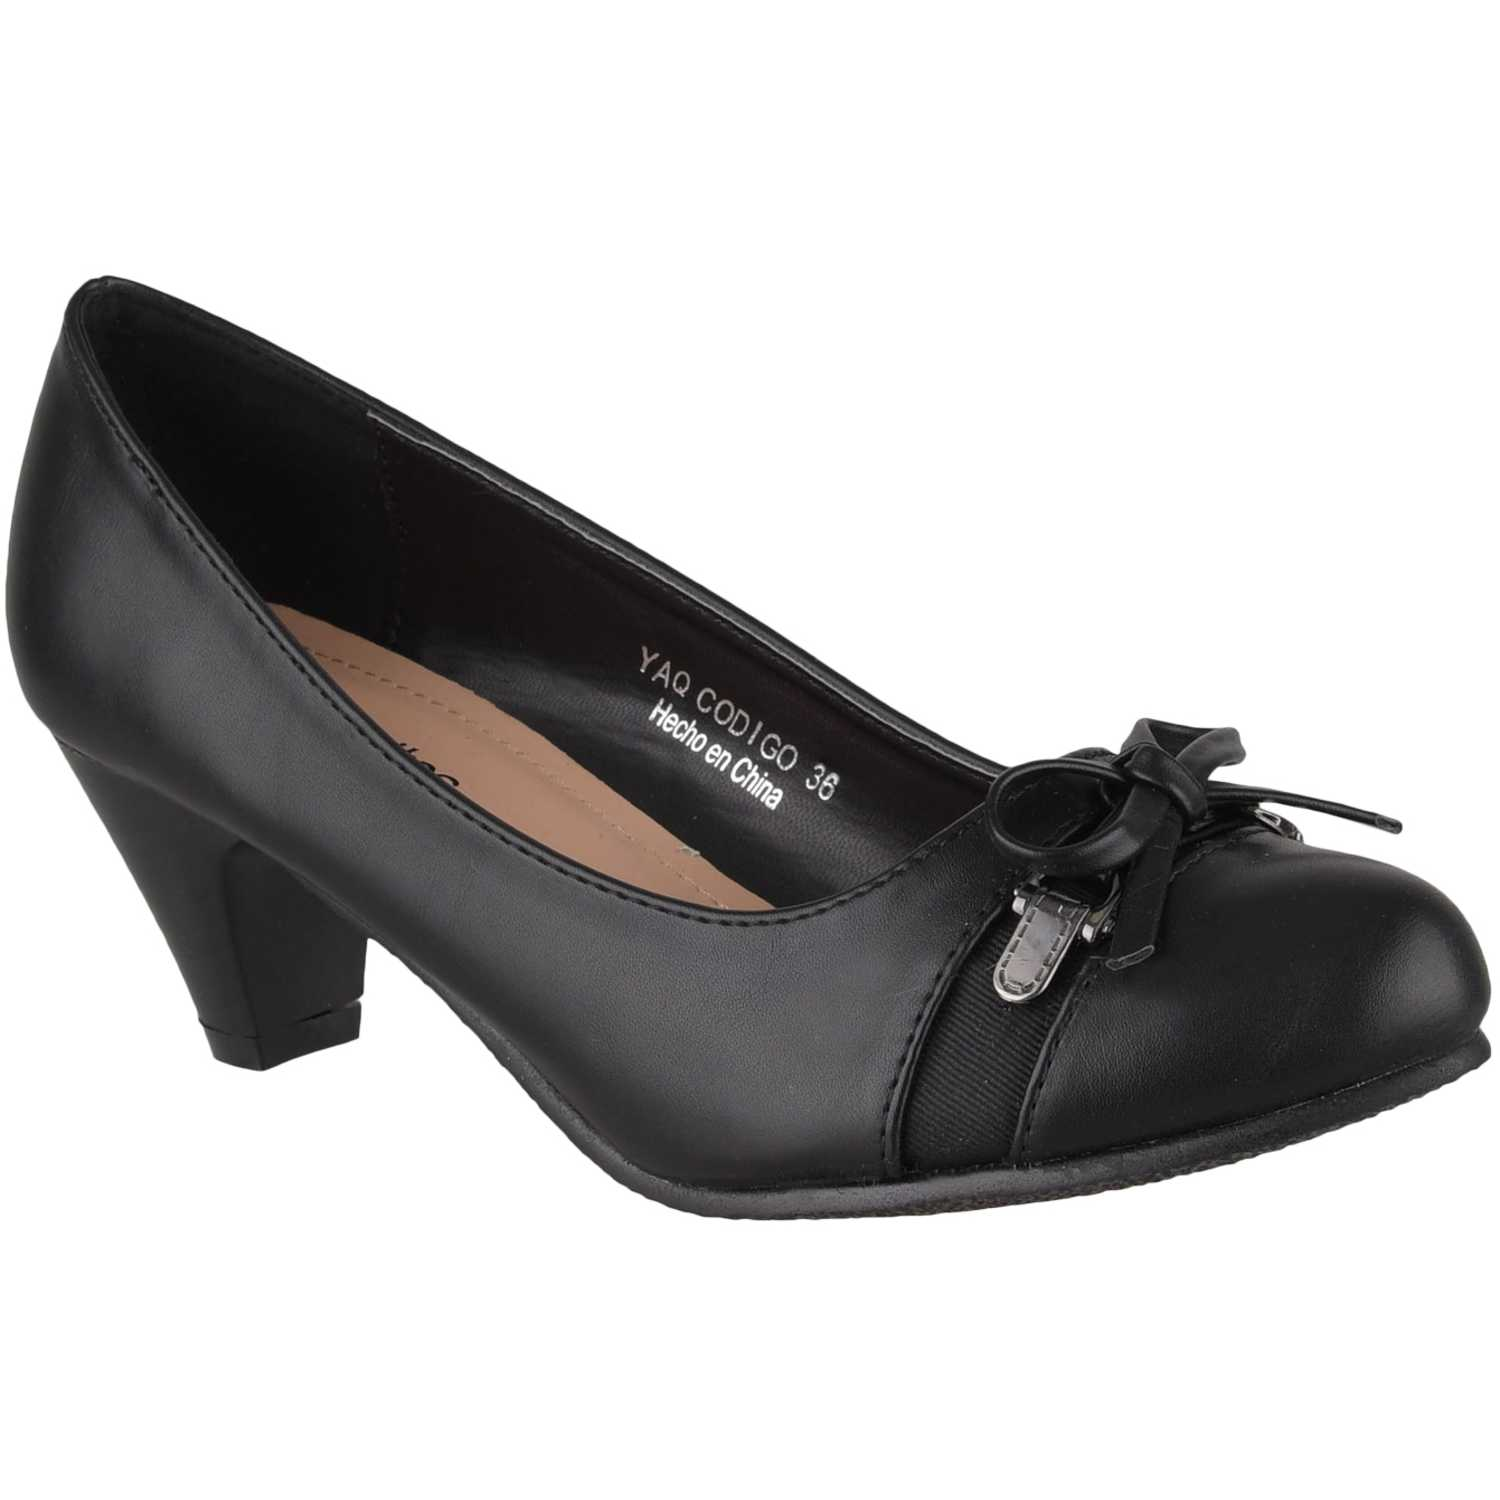 Platanitos cv 1635 Negro Estiletos y Pumps